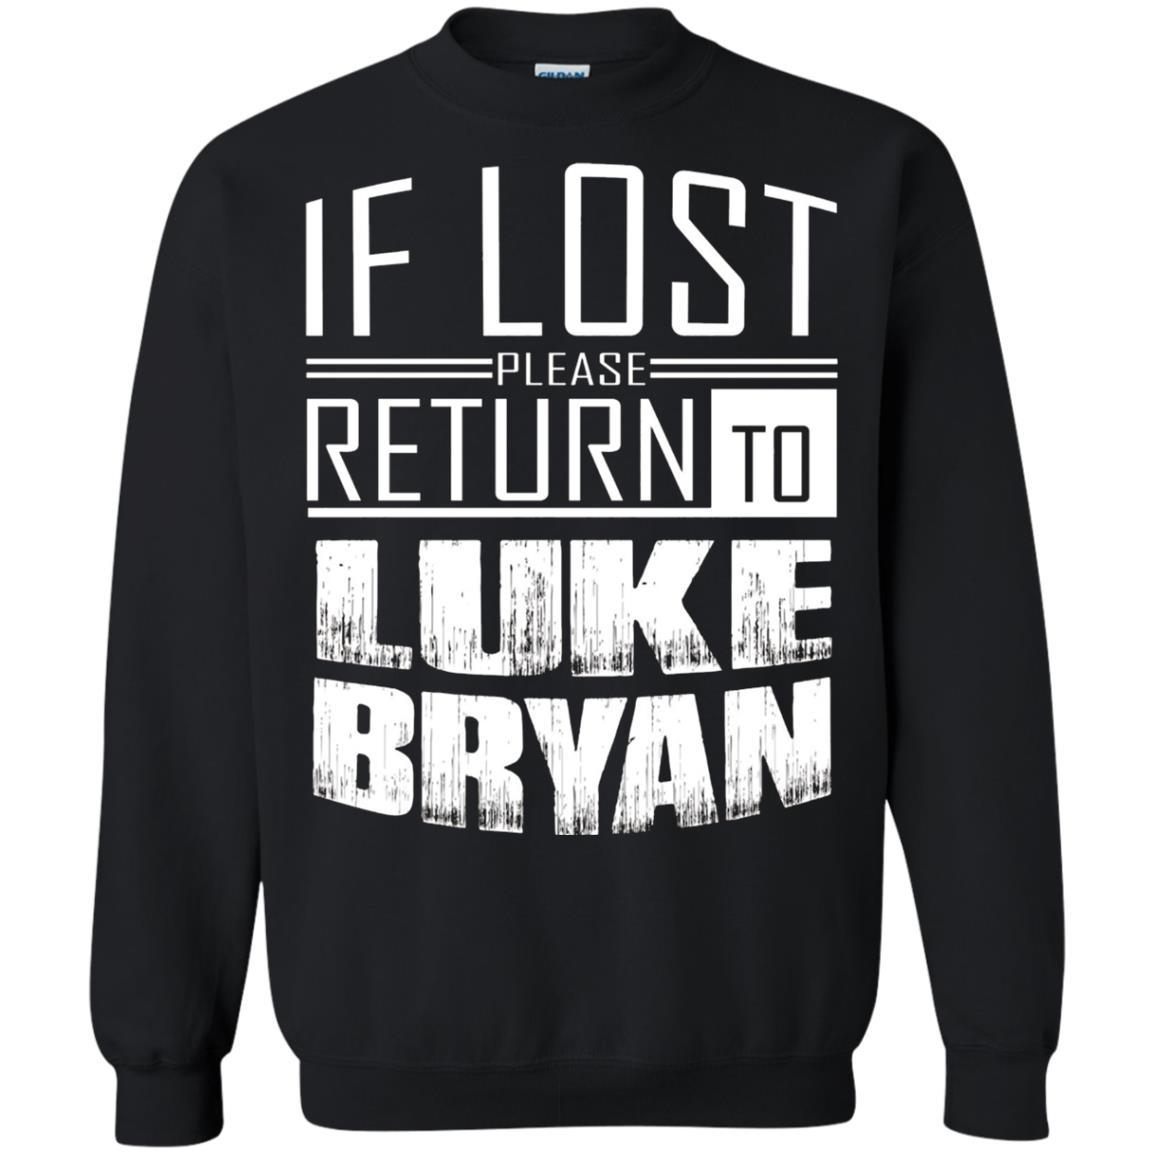 if lost please return to luke name bryan - Crewneck Pullover Sweatshirt Black / 5XL